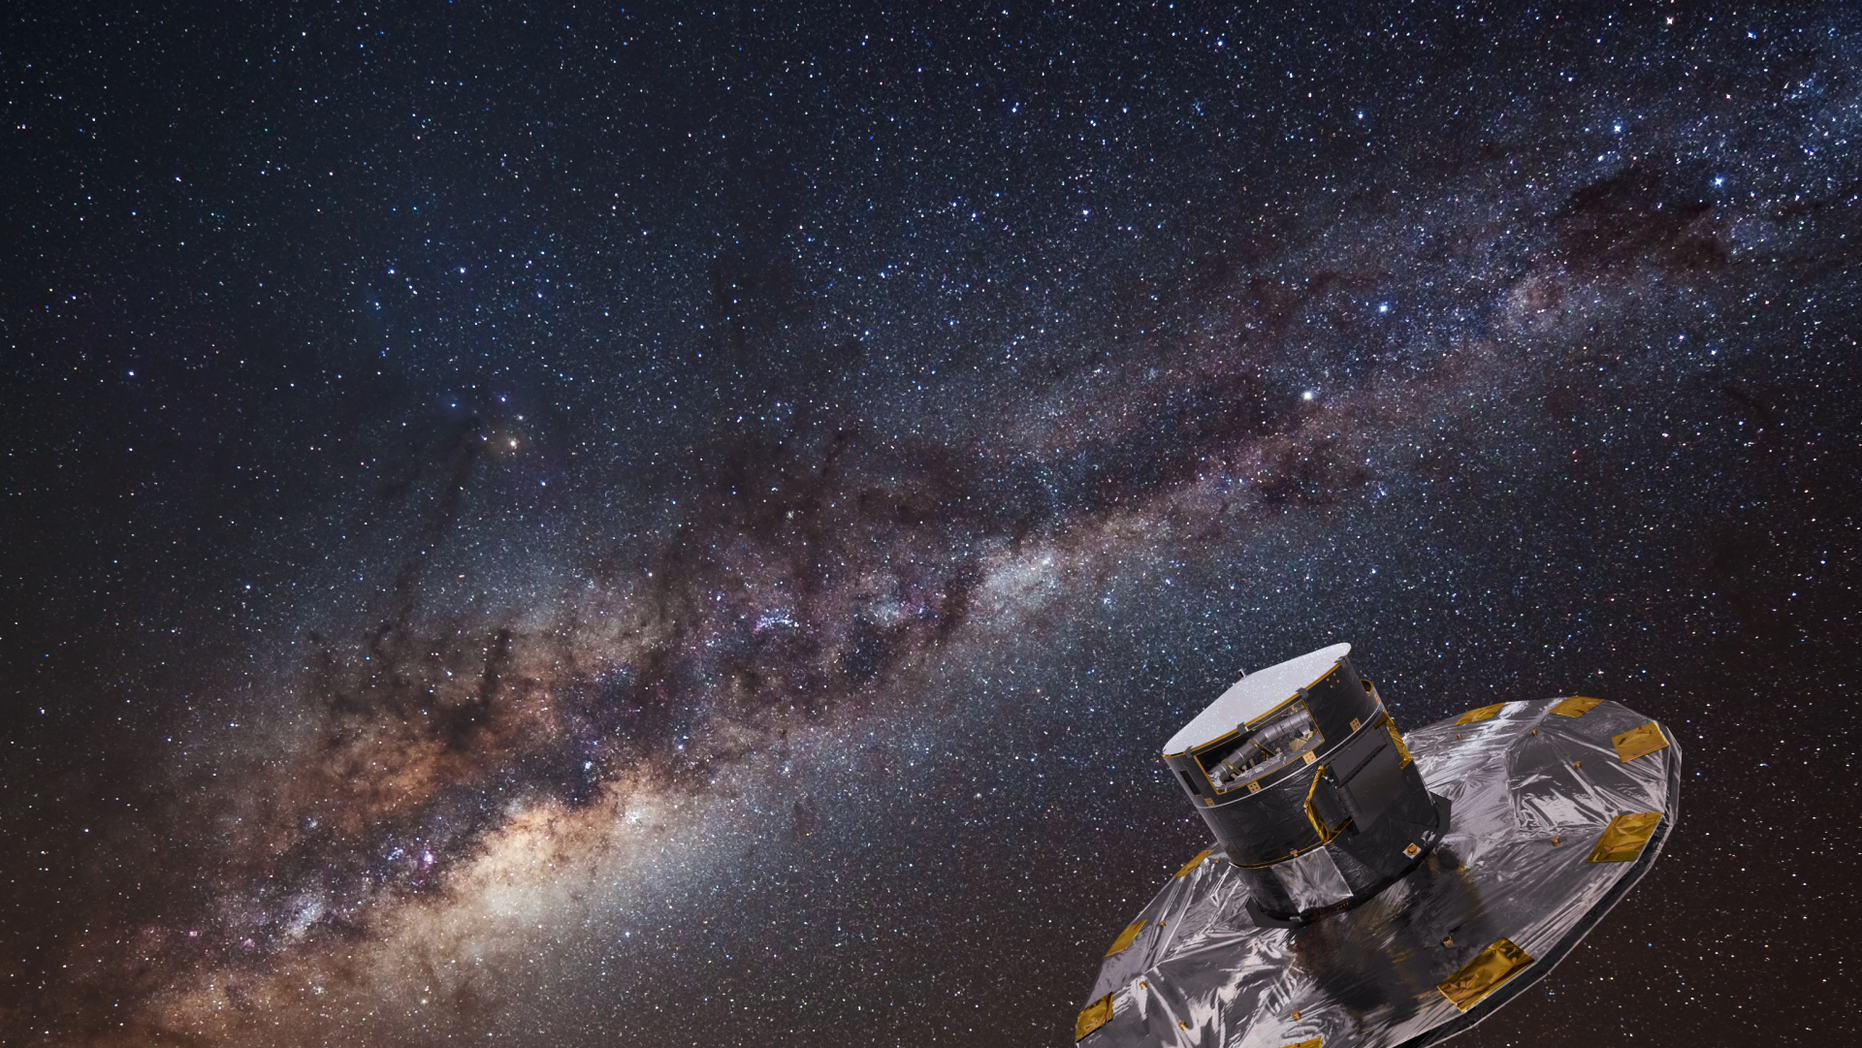 An artist's depiction of the Gaia spacecraft mapping stars in the Milky Way.